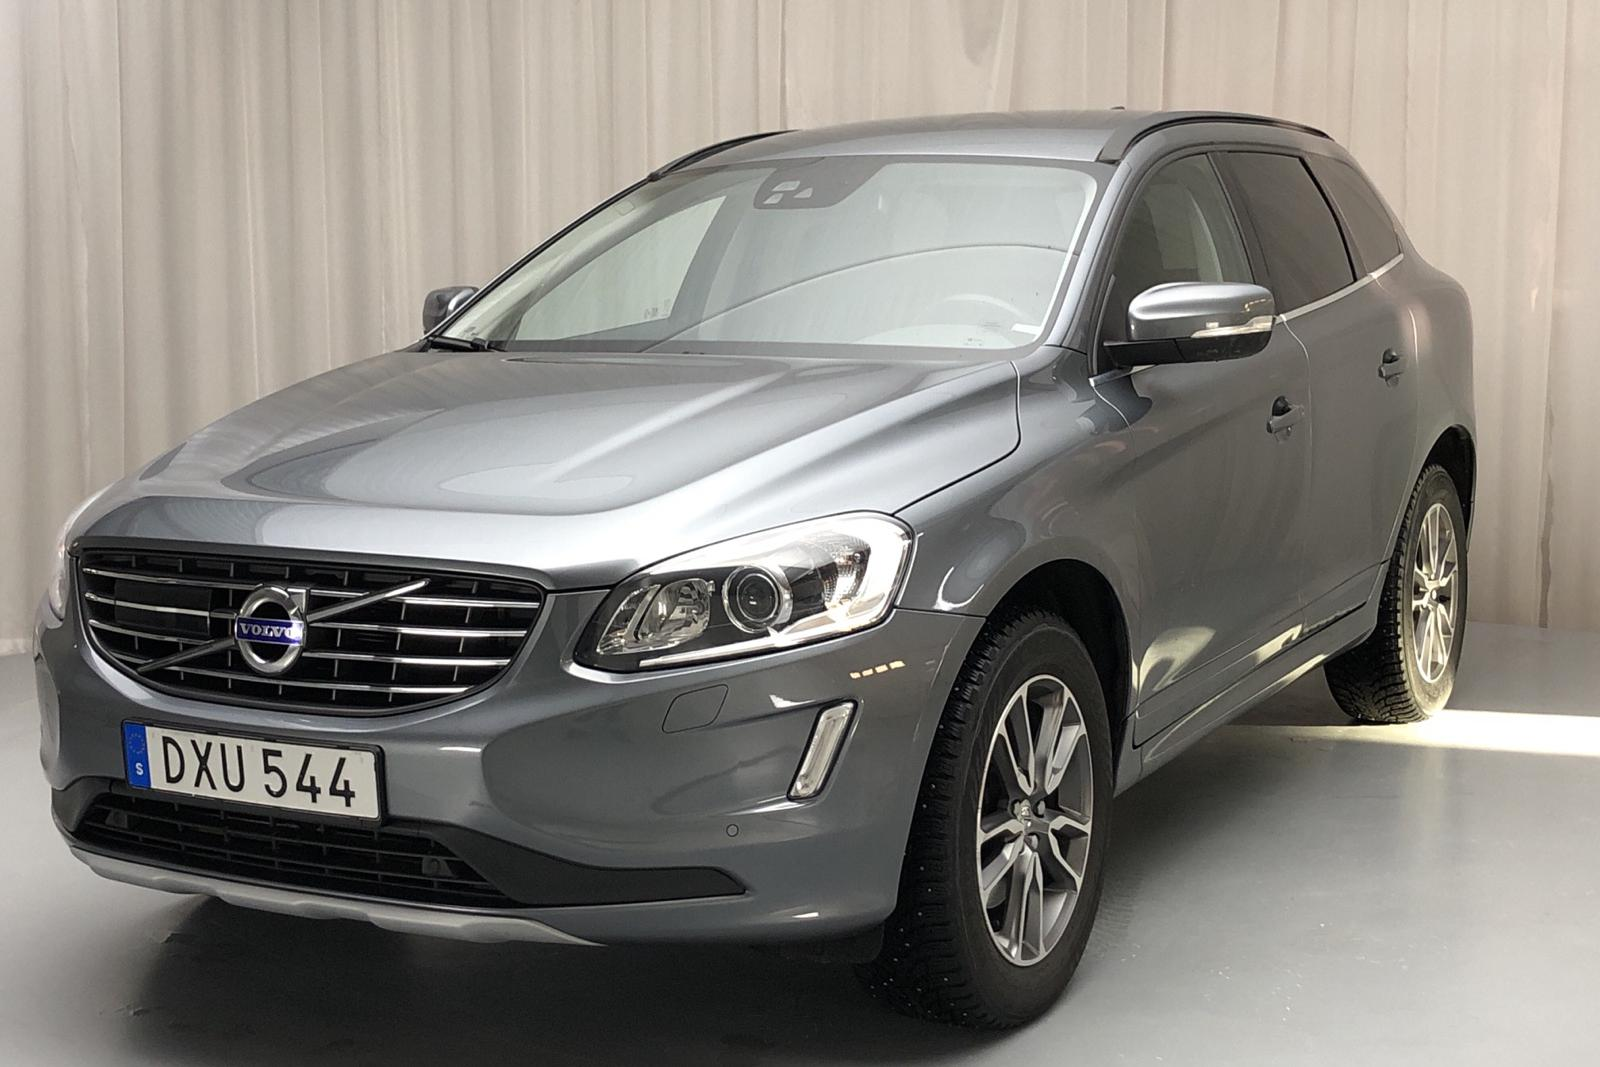 Volvo XC60 D4 2WD (190hk) - 80 510 km - Automatic - gray - 2017